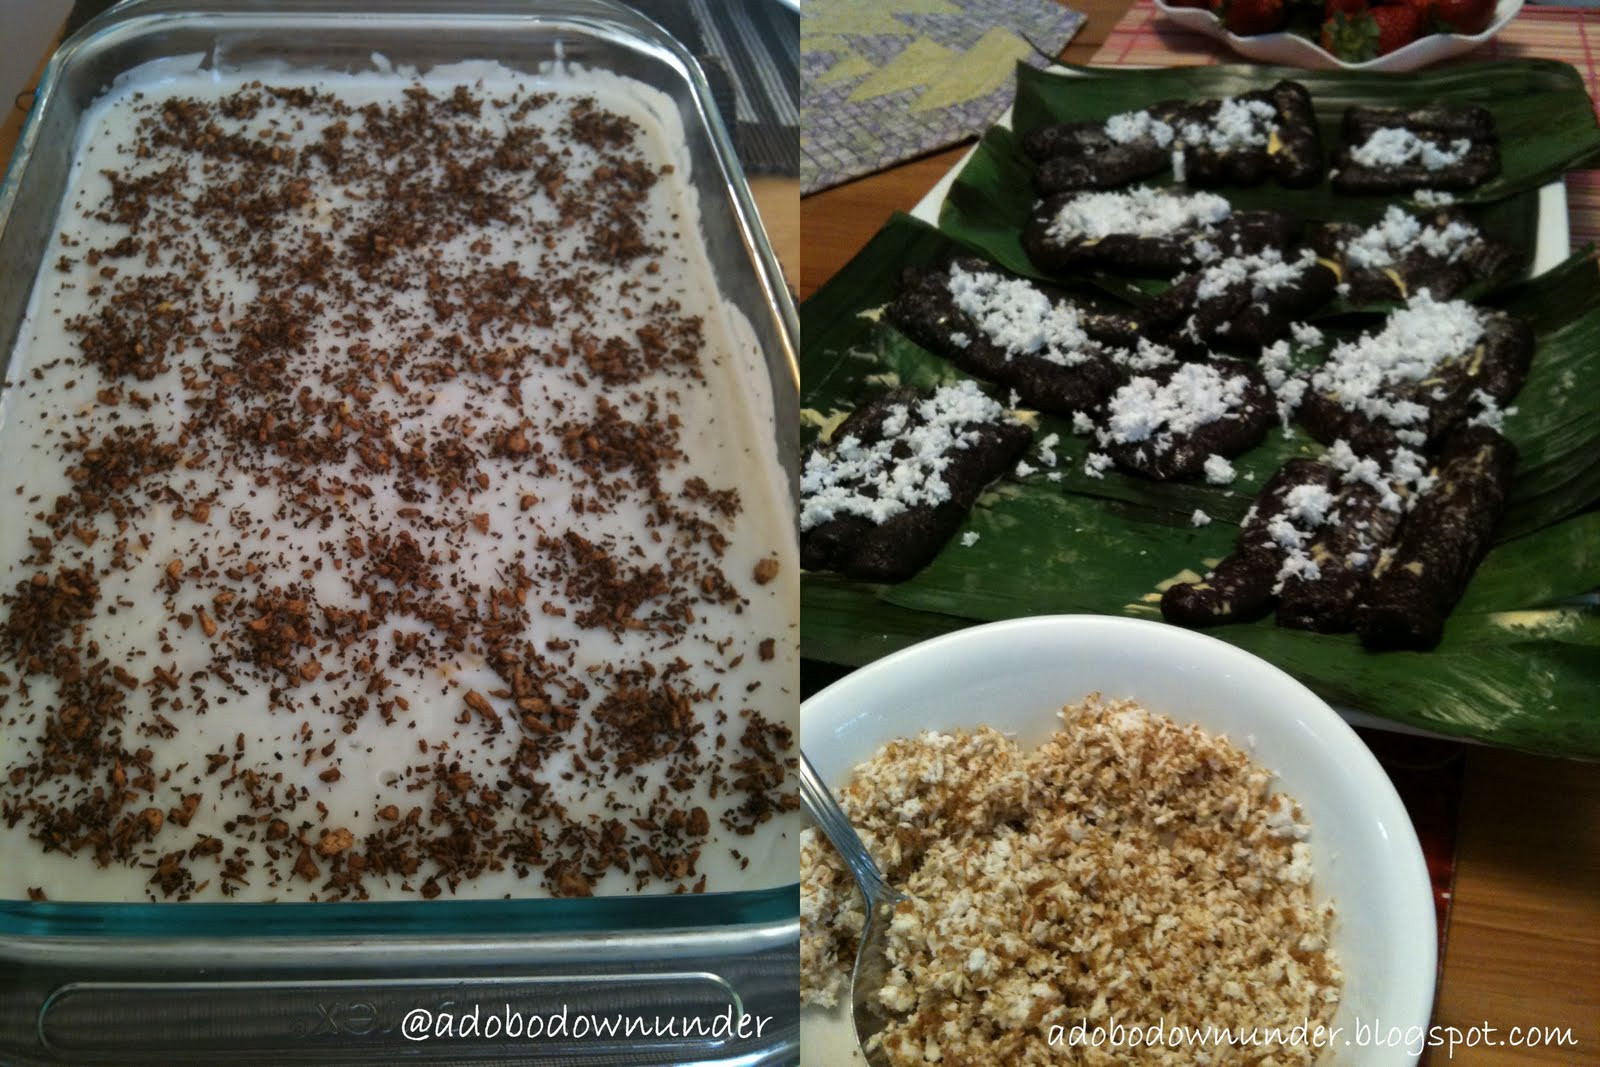 Filipino Christmas Desserts  adobo down under Christmas in July Filipino style